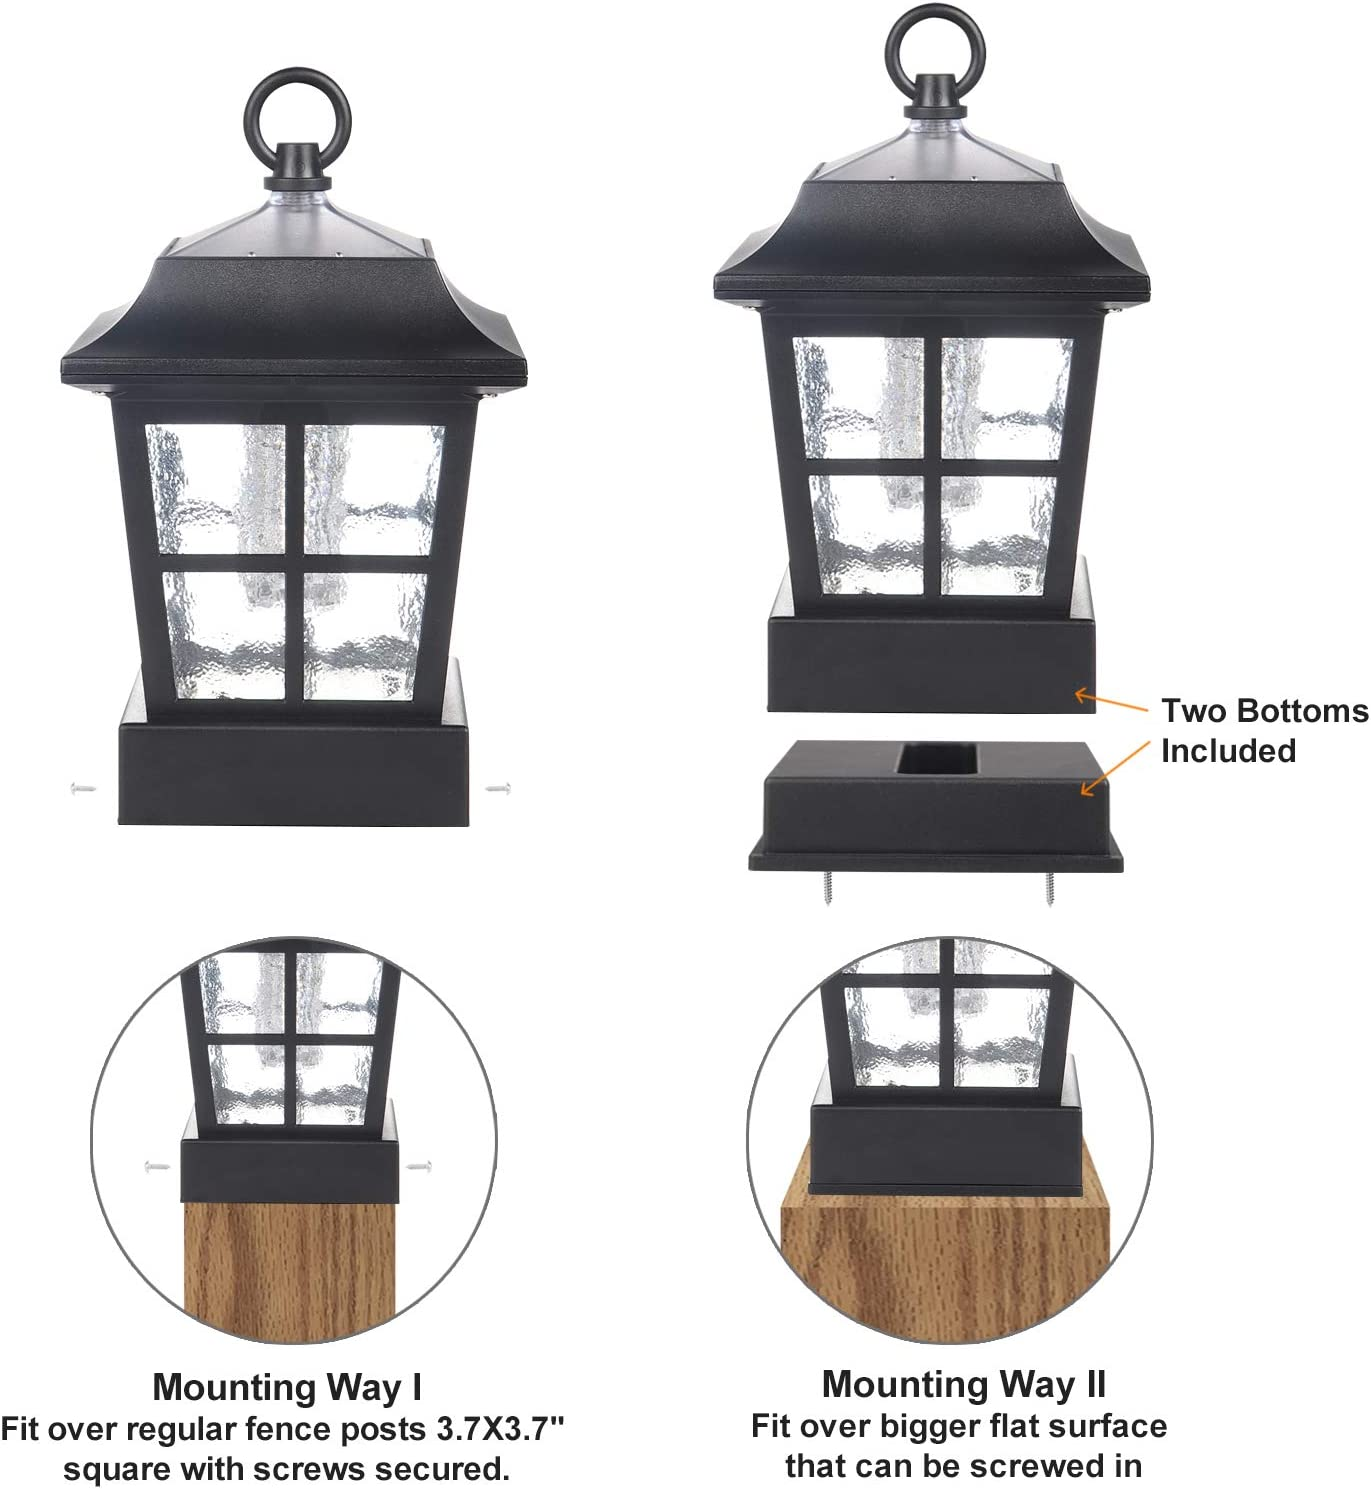 """Solar Fence Post Light Solar Deck Light Solar Post Cap Light Solar Patio Light 15 LUMENS ST130QFX2 fit for 3.7X3.7/"""" Regular Fence Posts or with Included Adaptor fit for Bigger Flat Surface"""